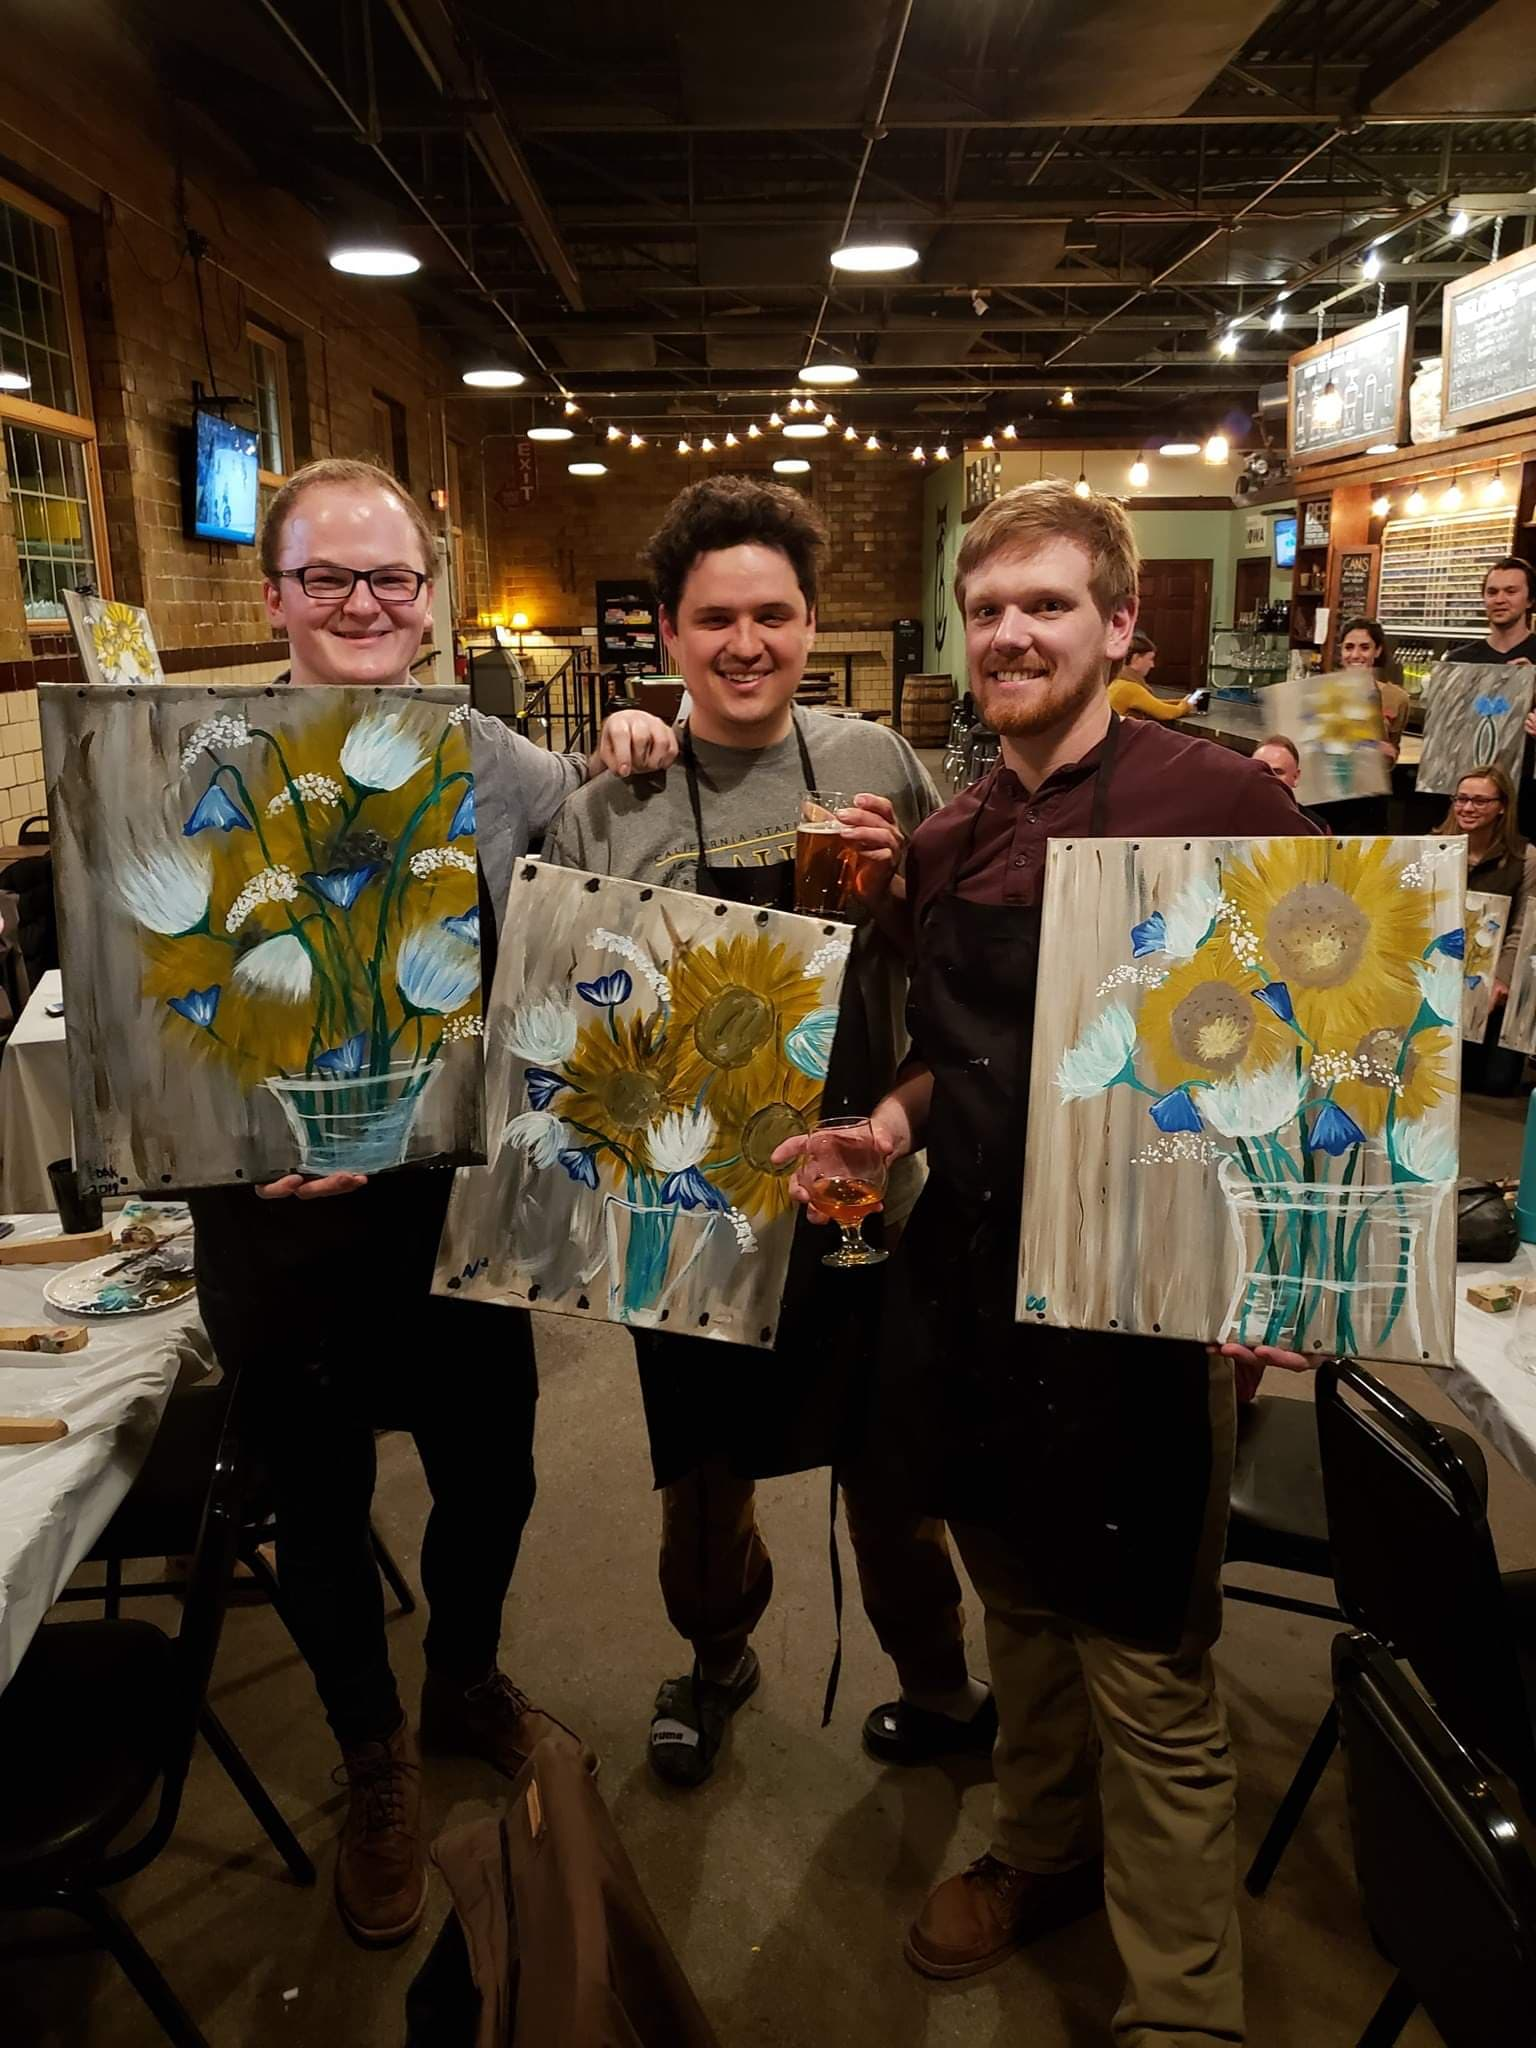 BBMB Master painters!